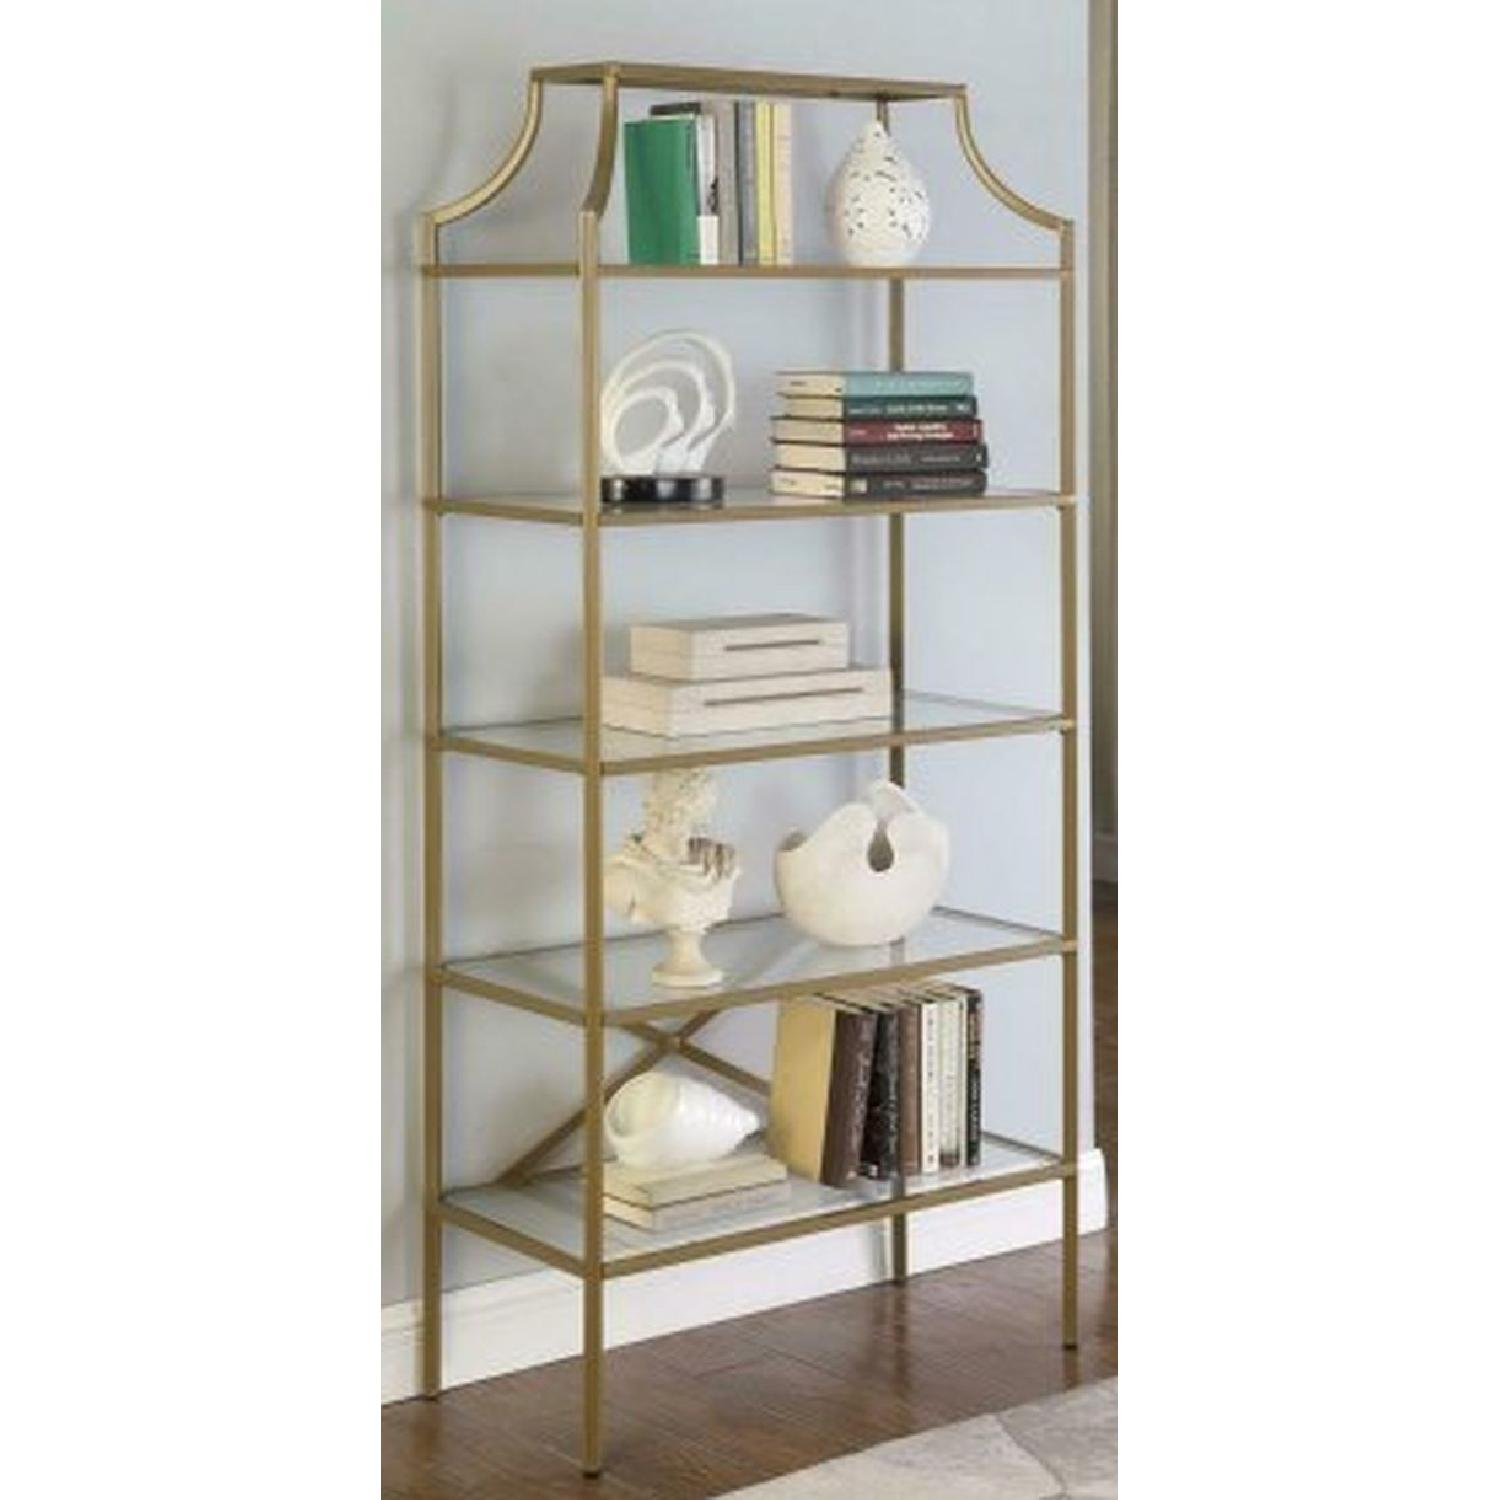 Modern Display Unit w/ Gold Frame & Tempered Glass Shelves - image-1